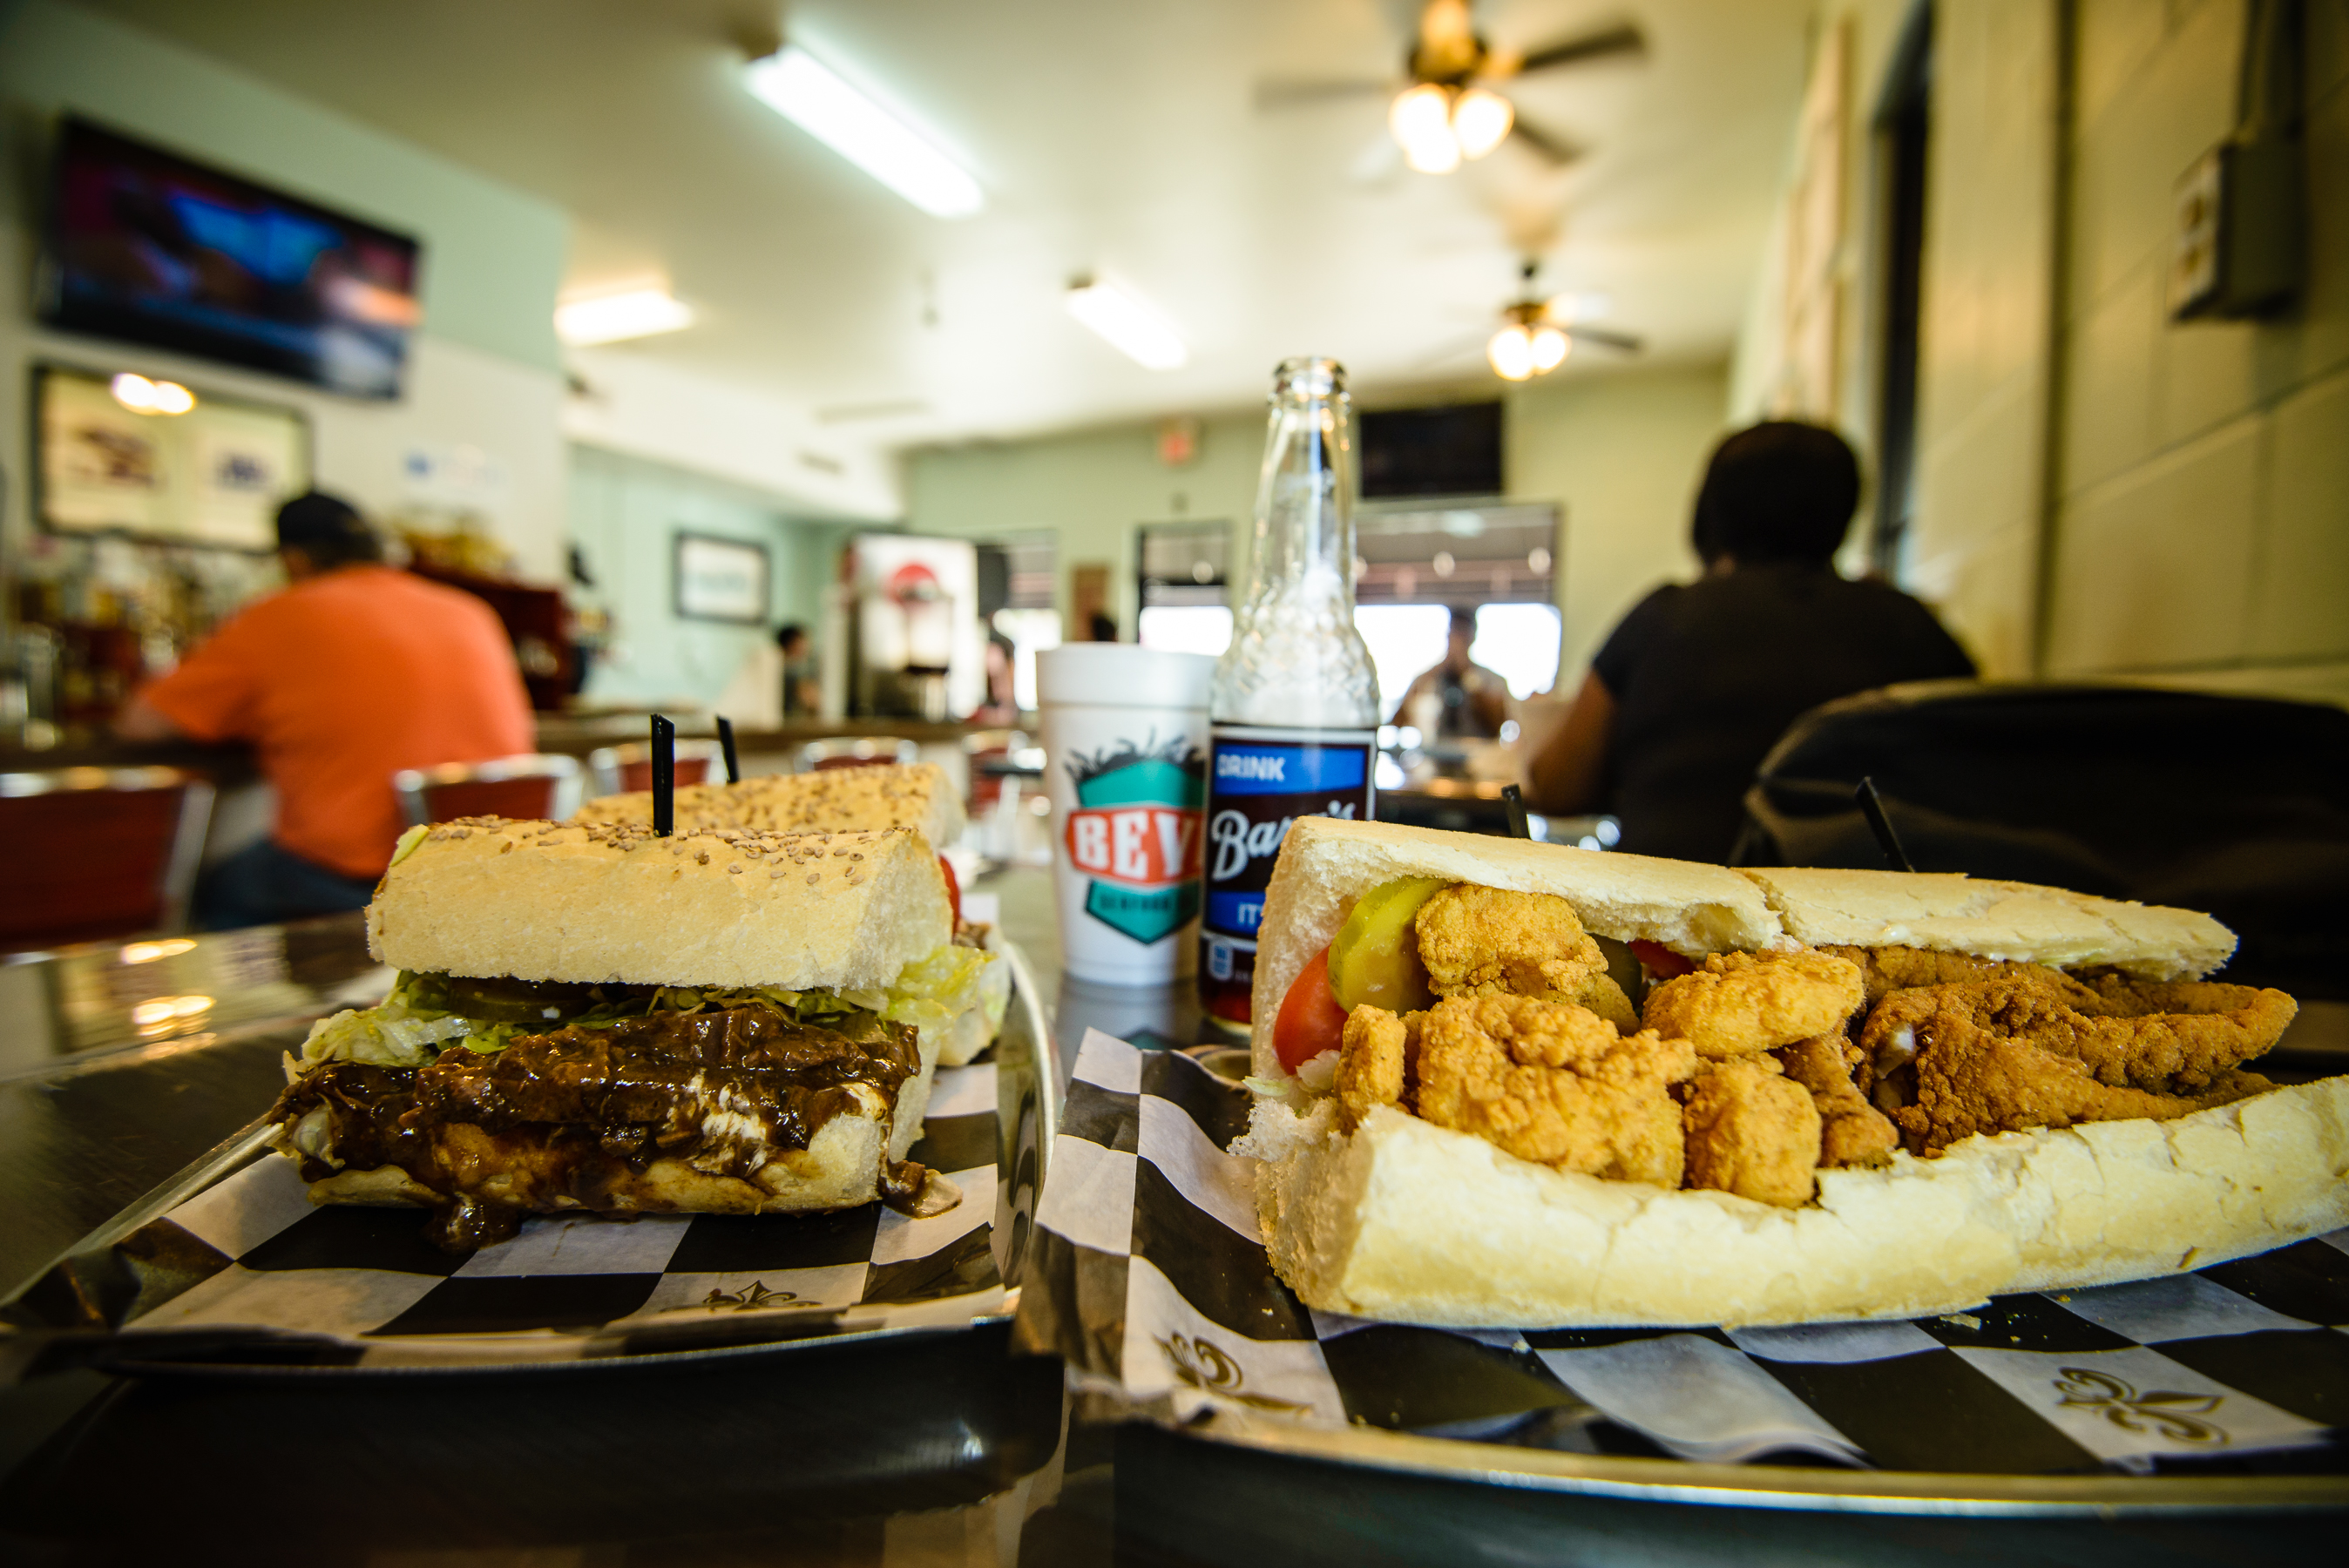 poboys, new orleans seafood, kayak, kayak tour, kayak tour eats, food for kayaking